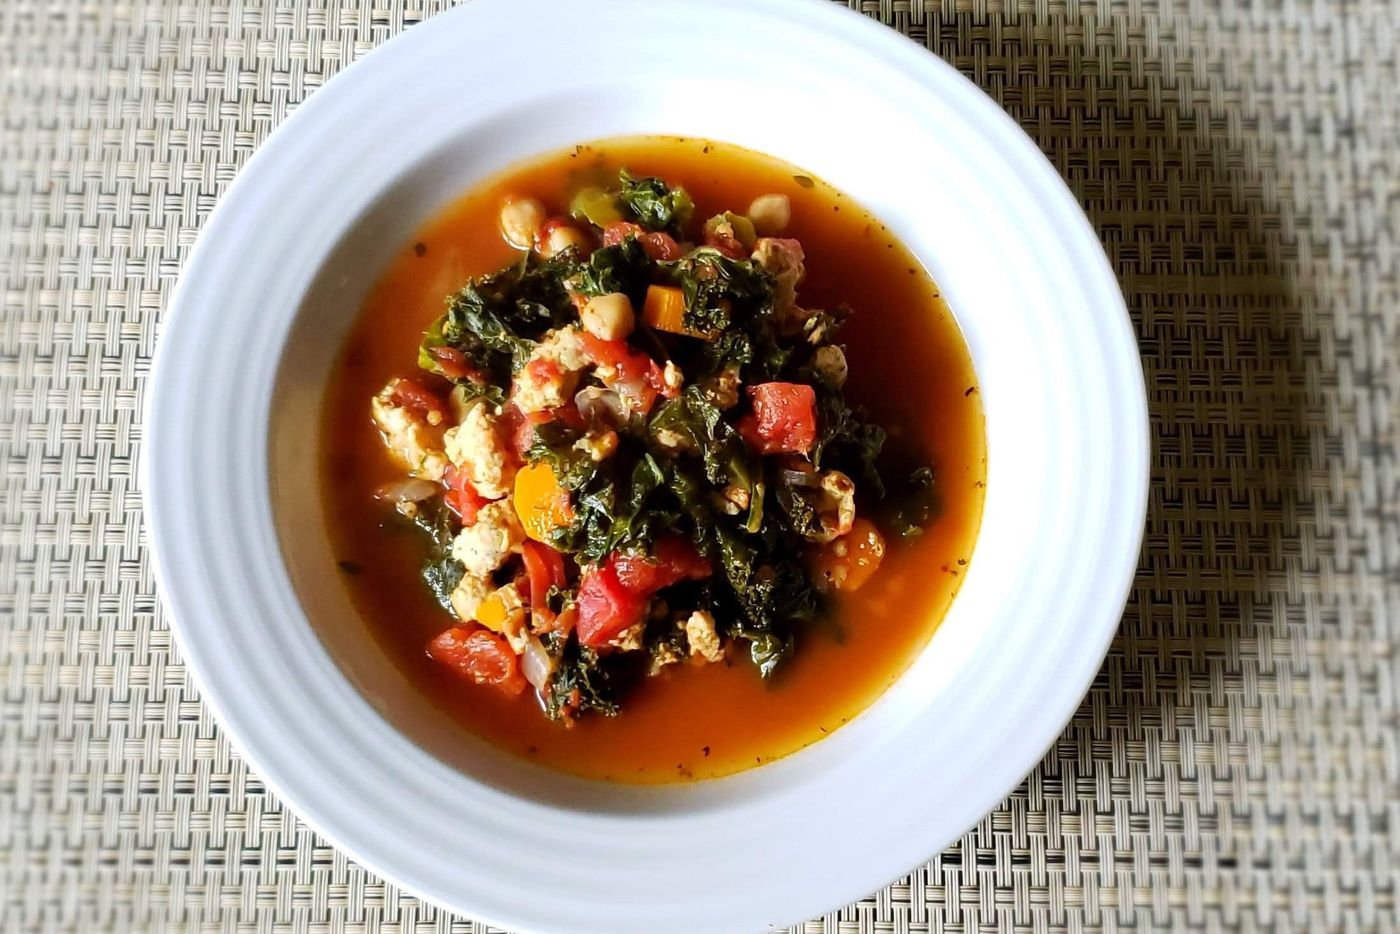 Healthy family recipe: Mediterranean turkey and kale chili